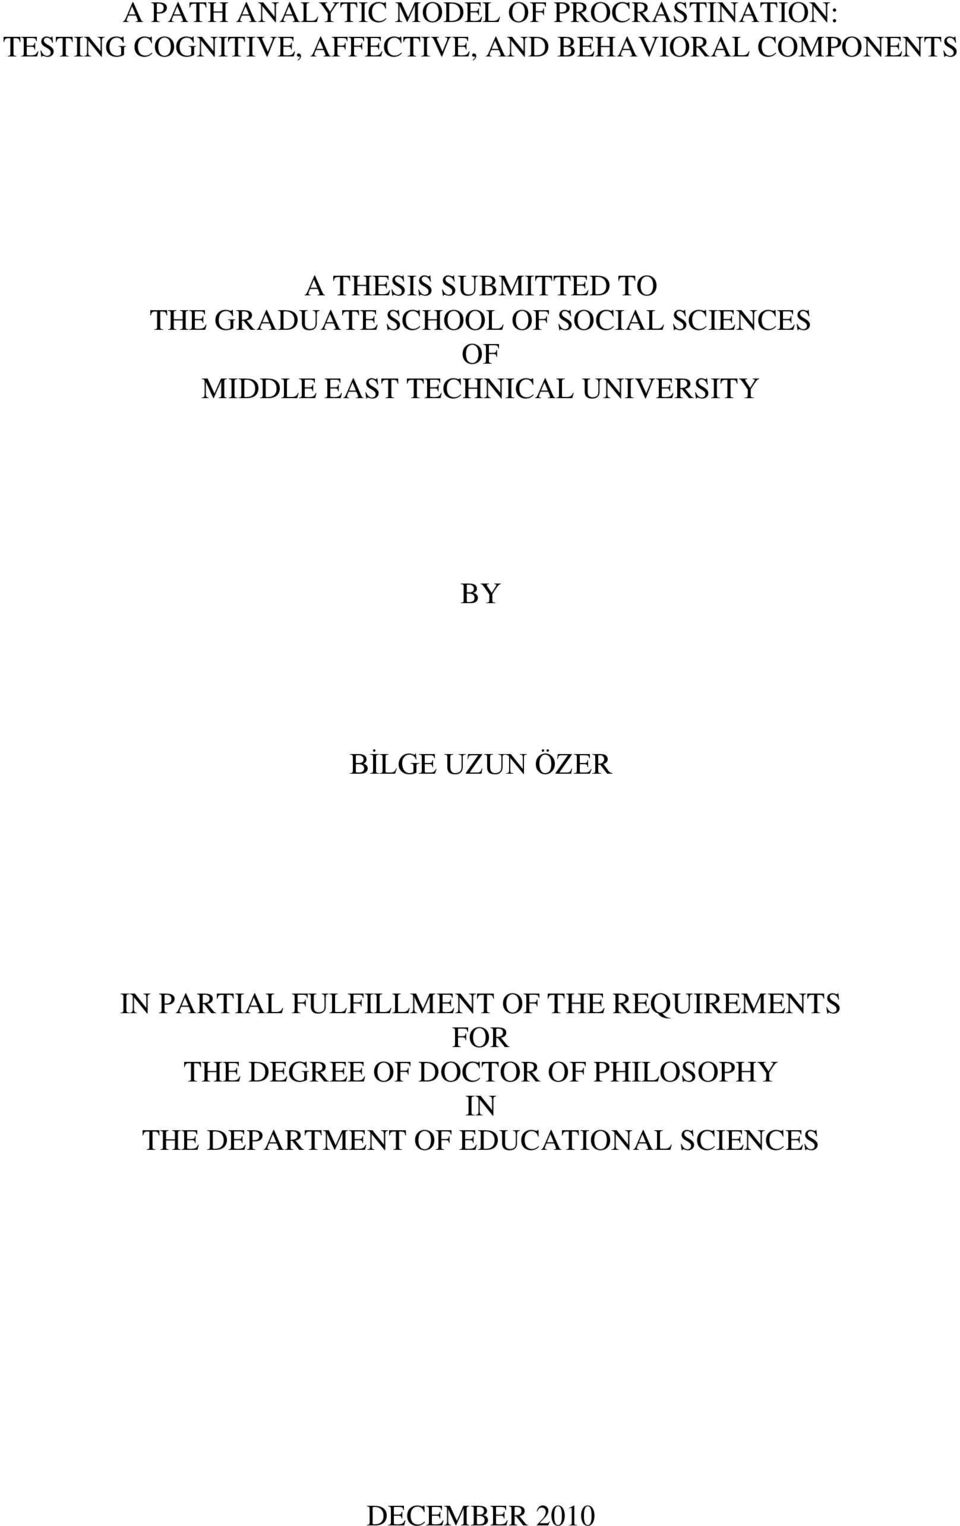 TECHNICAL UNIVERSITY BY BİLGE UZUN ÖZER IN PARTIAL FULFILLMENT OF THE REQUIREMENTS FOR